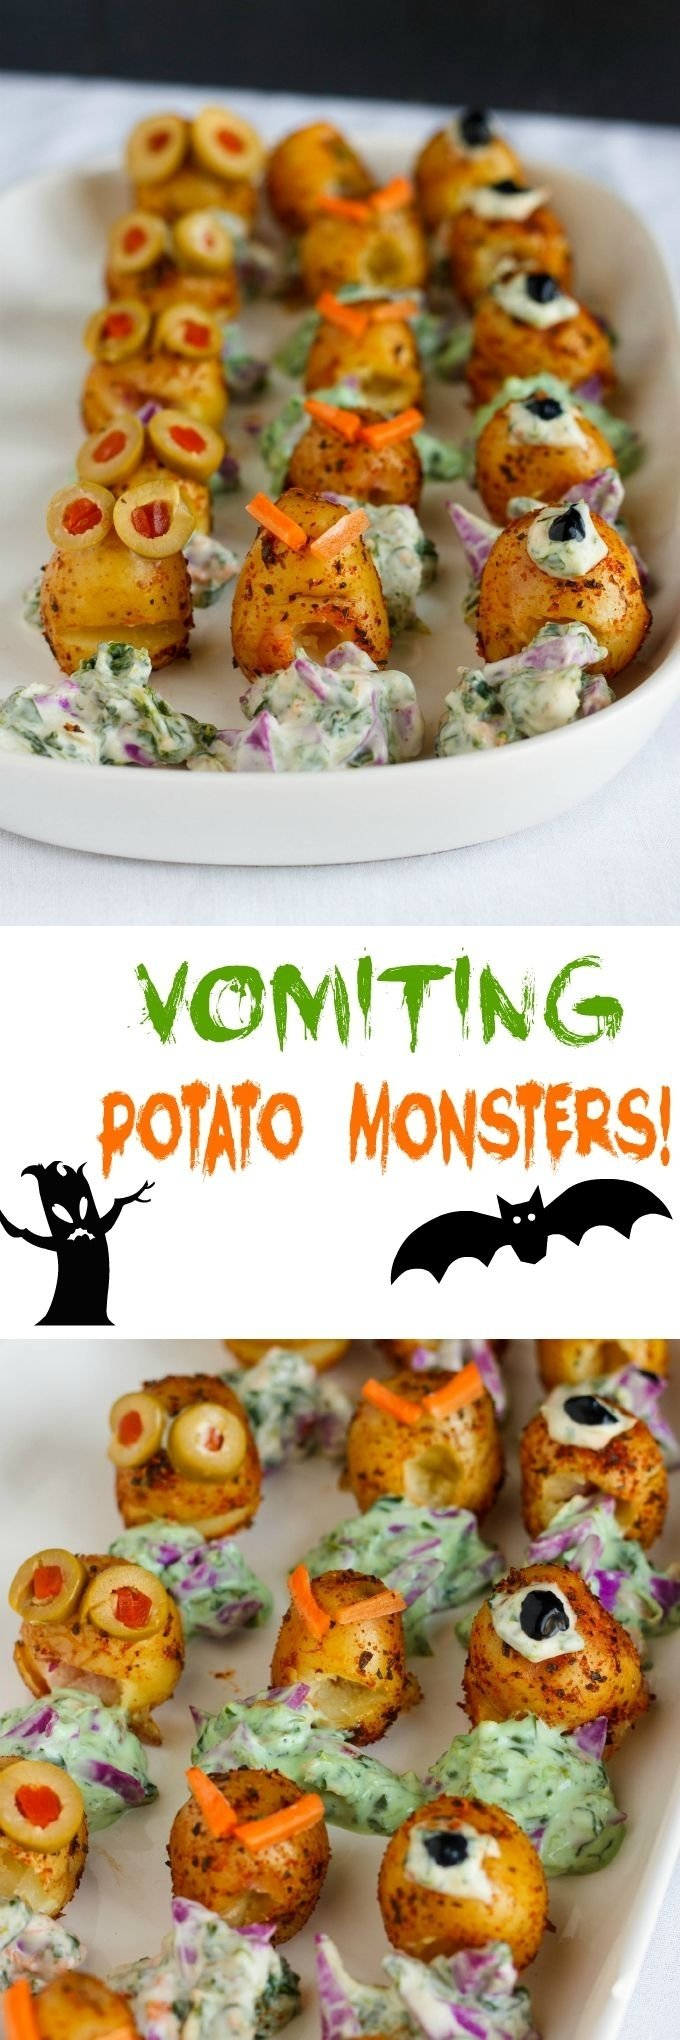 10 Ideal Halloween Food Ideas For Adults vomiting potato monsters for halloween recipe halloween 2020